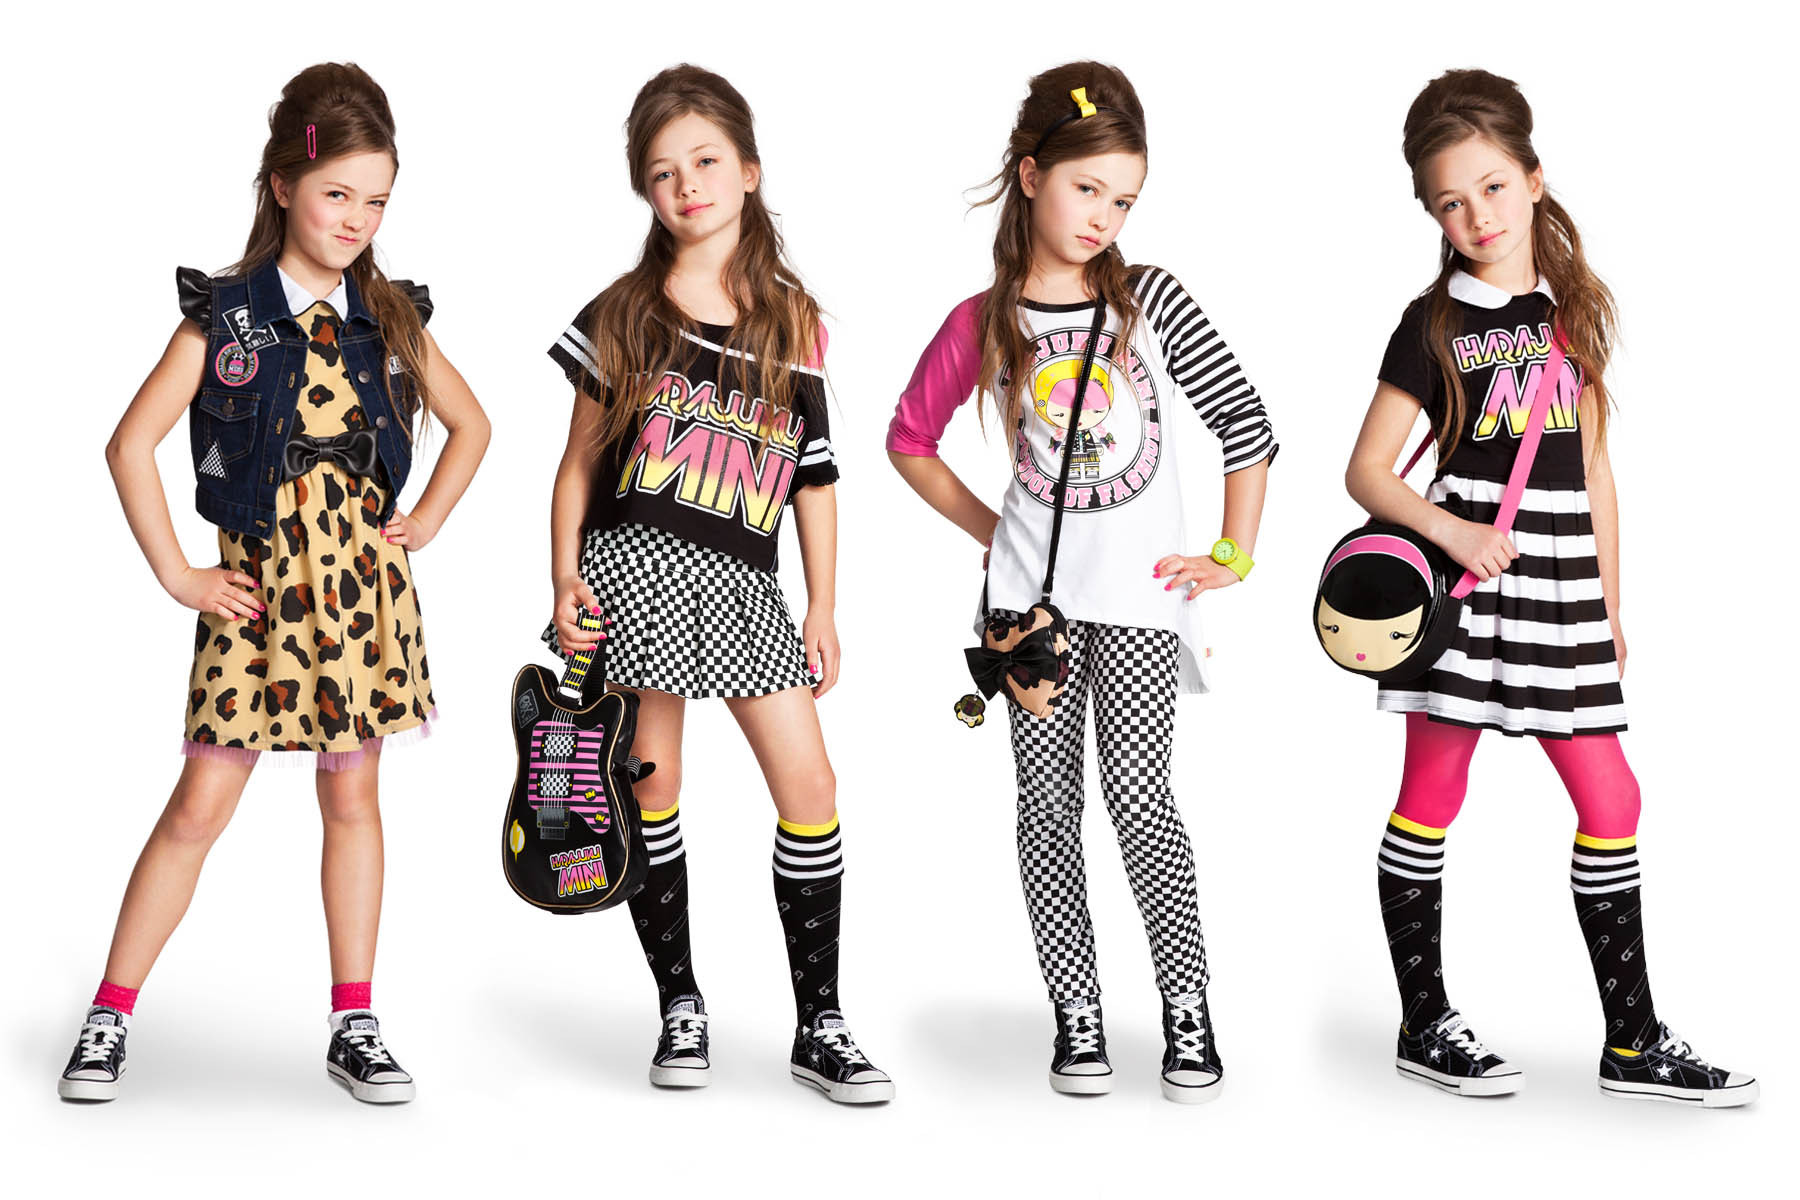 c18948754d The Top 10 BEST Tween Shopping Sites - Plus the 5 WORST!